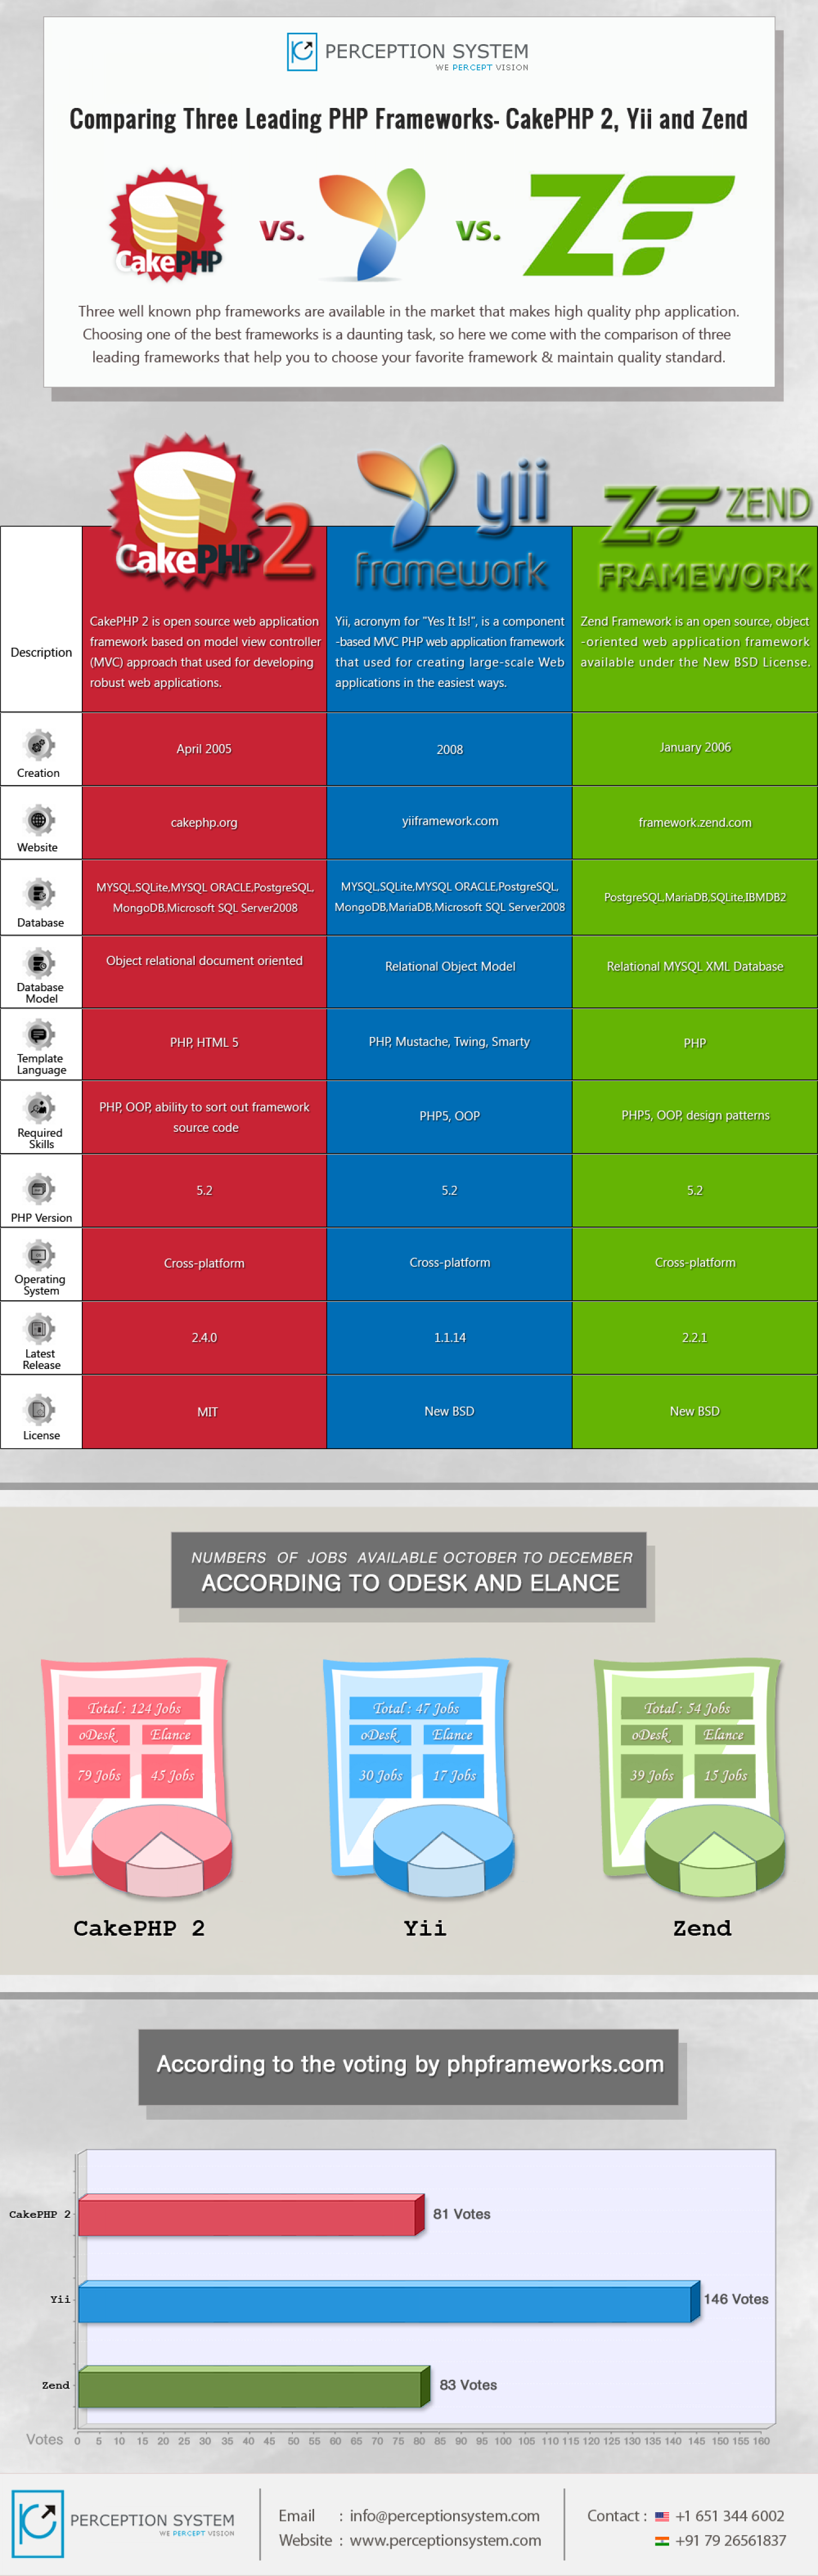 Comparing Three Leading PHP Frameworks- CakePHP 2, Yii and Zend Infographic